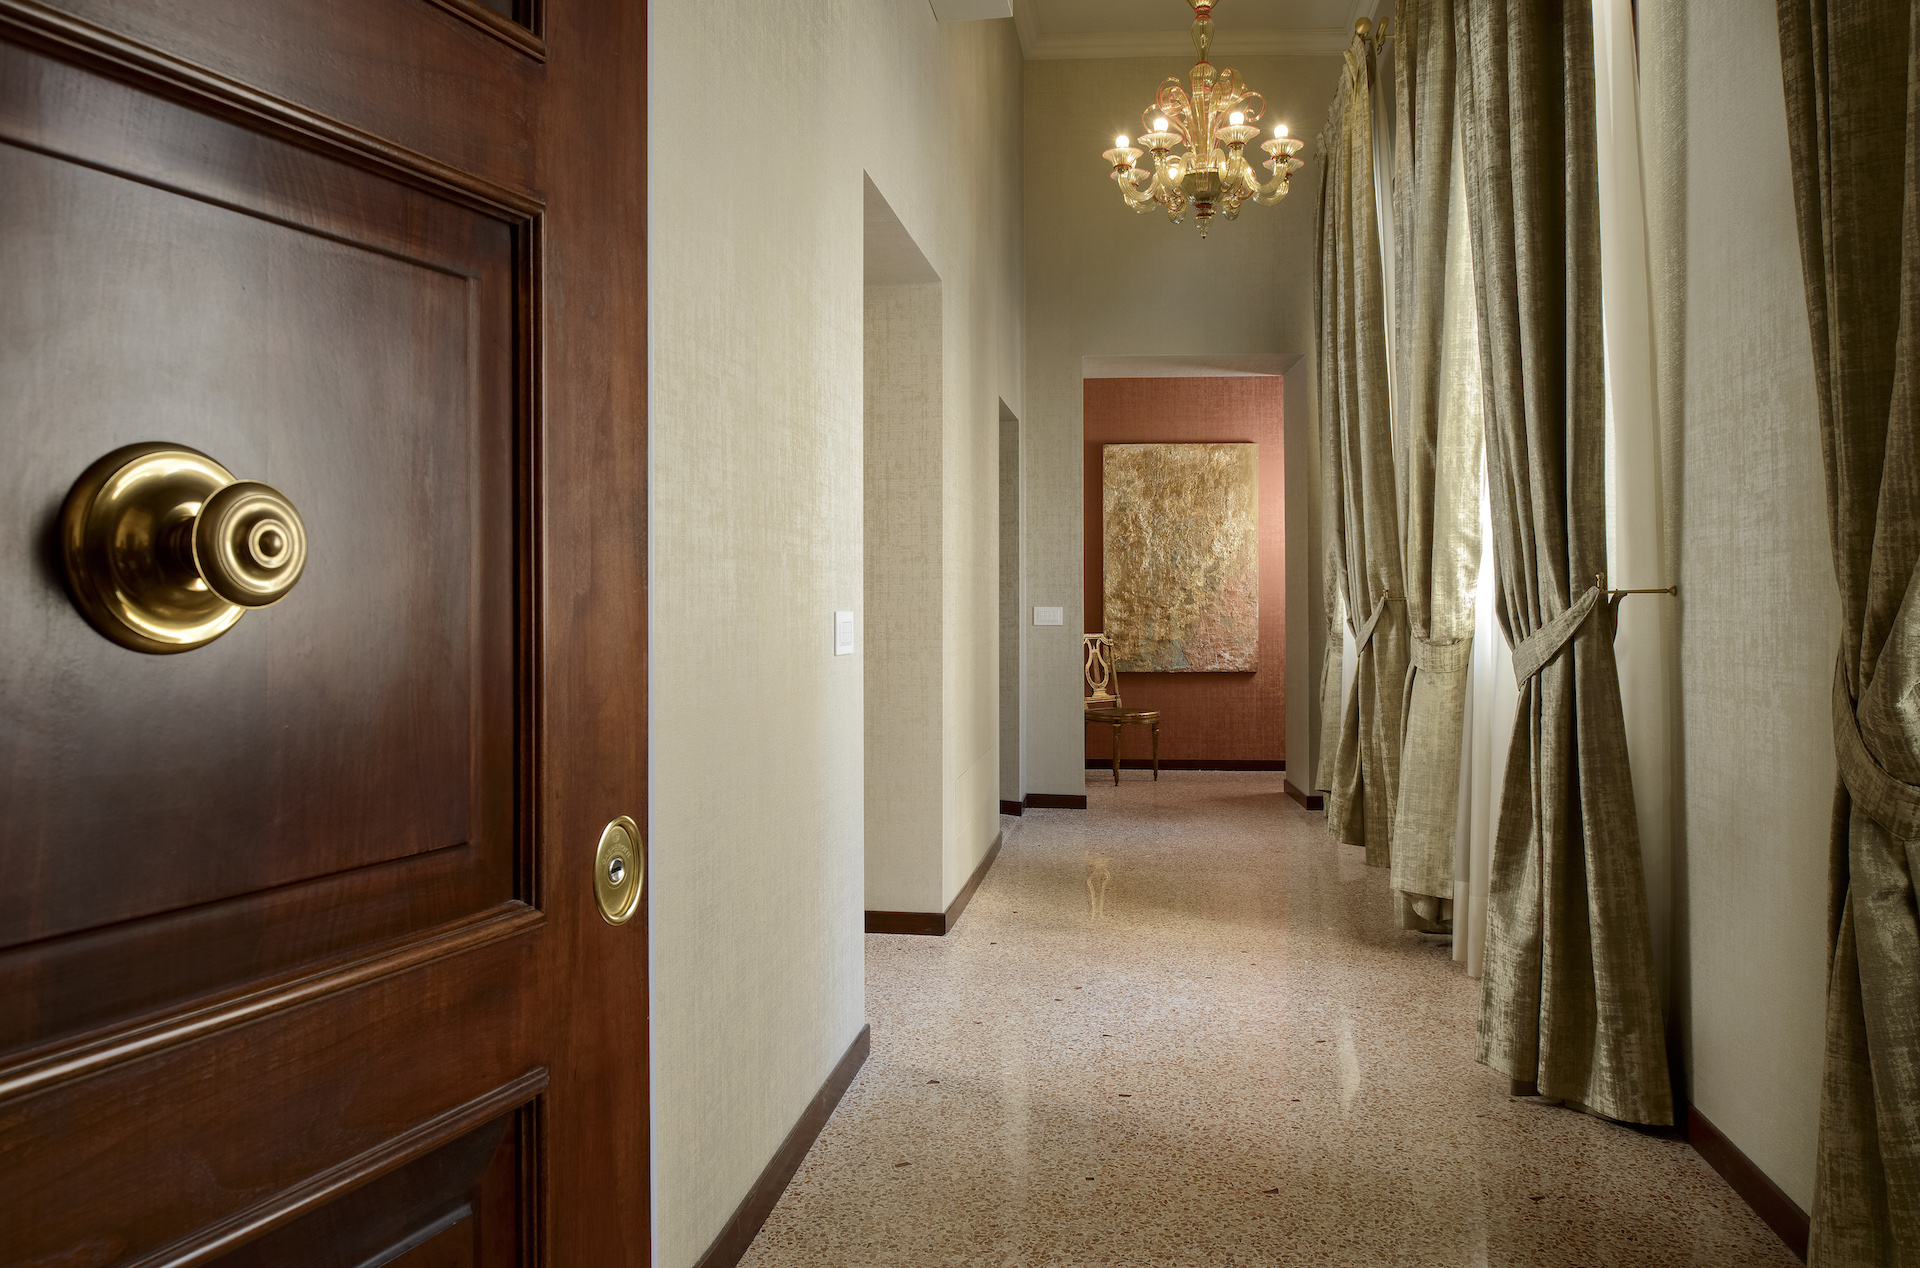 Additional photo for property listing at Vignole apartment at Palazzo Garzoni Moro Palazzo Garzoni Moro Venice Venice, Venice 30124 Italie